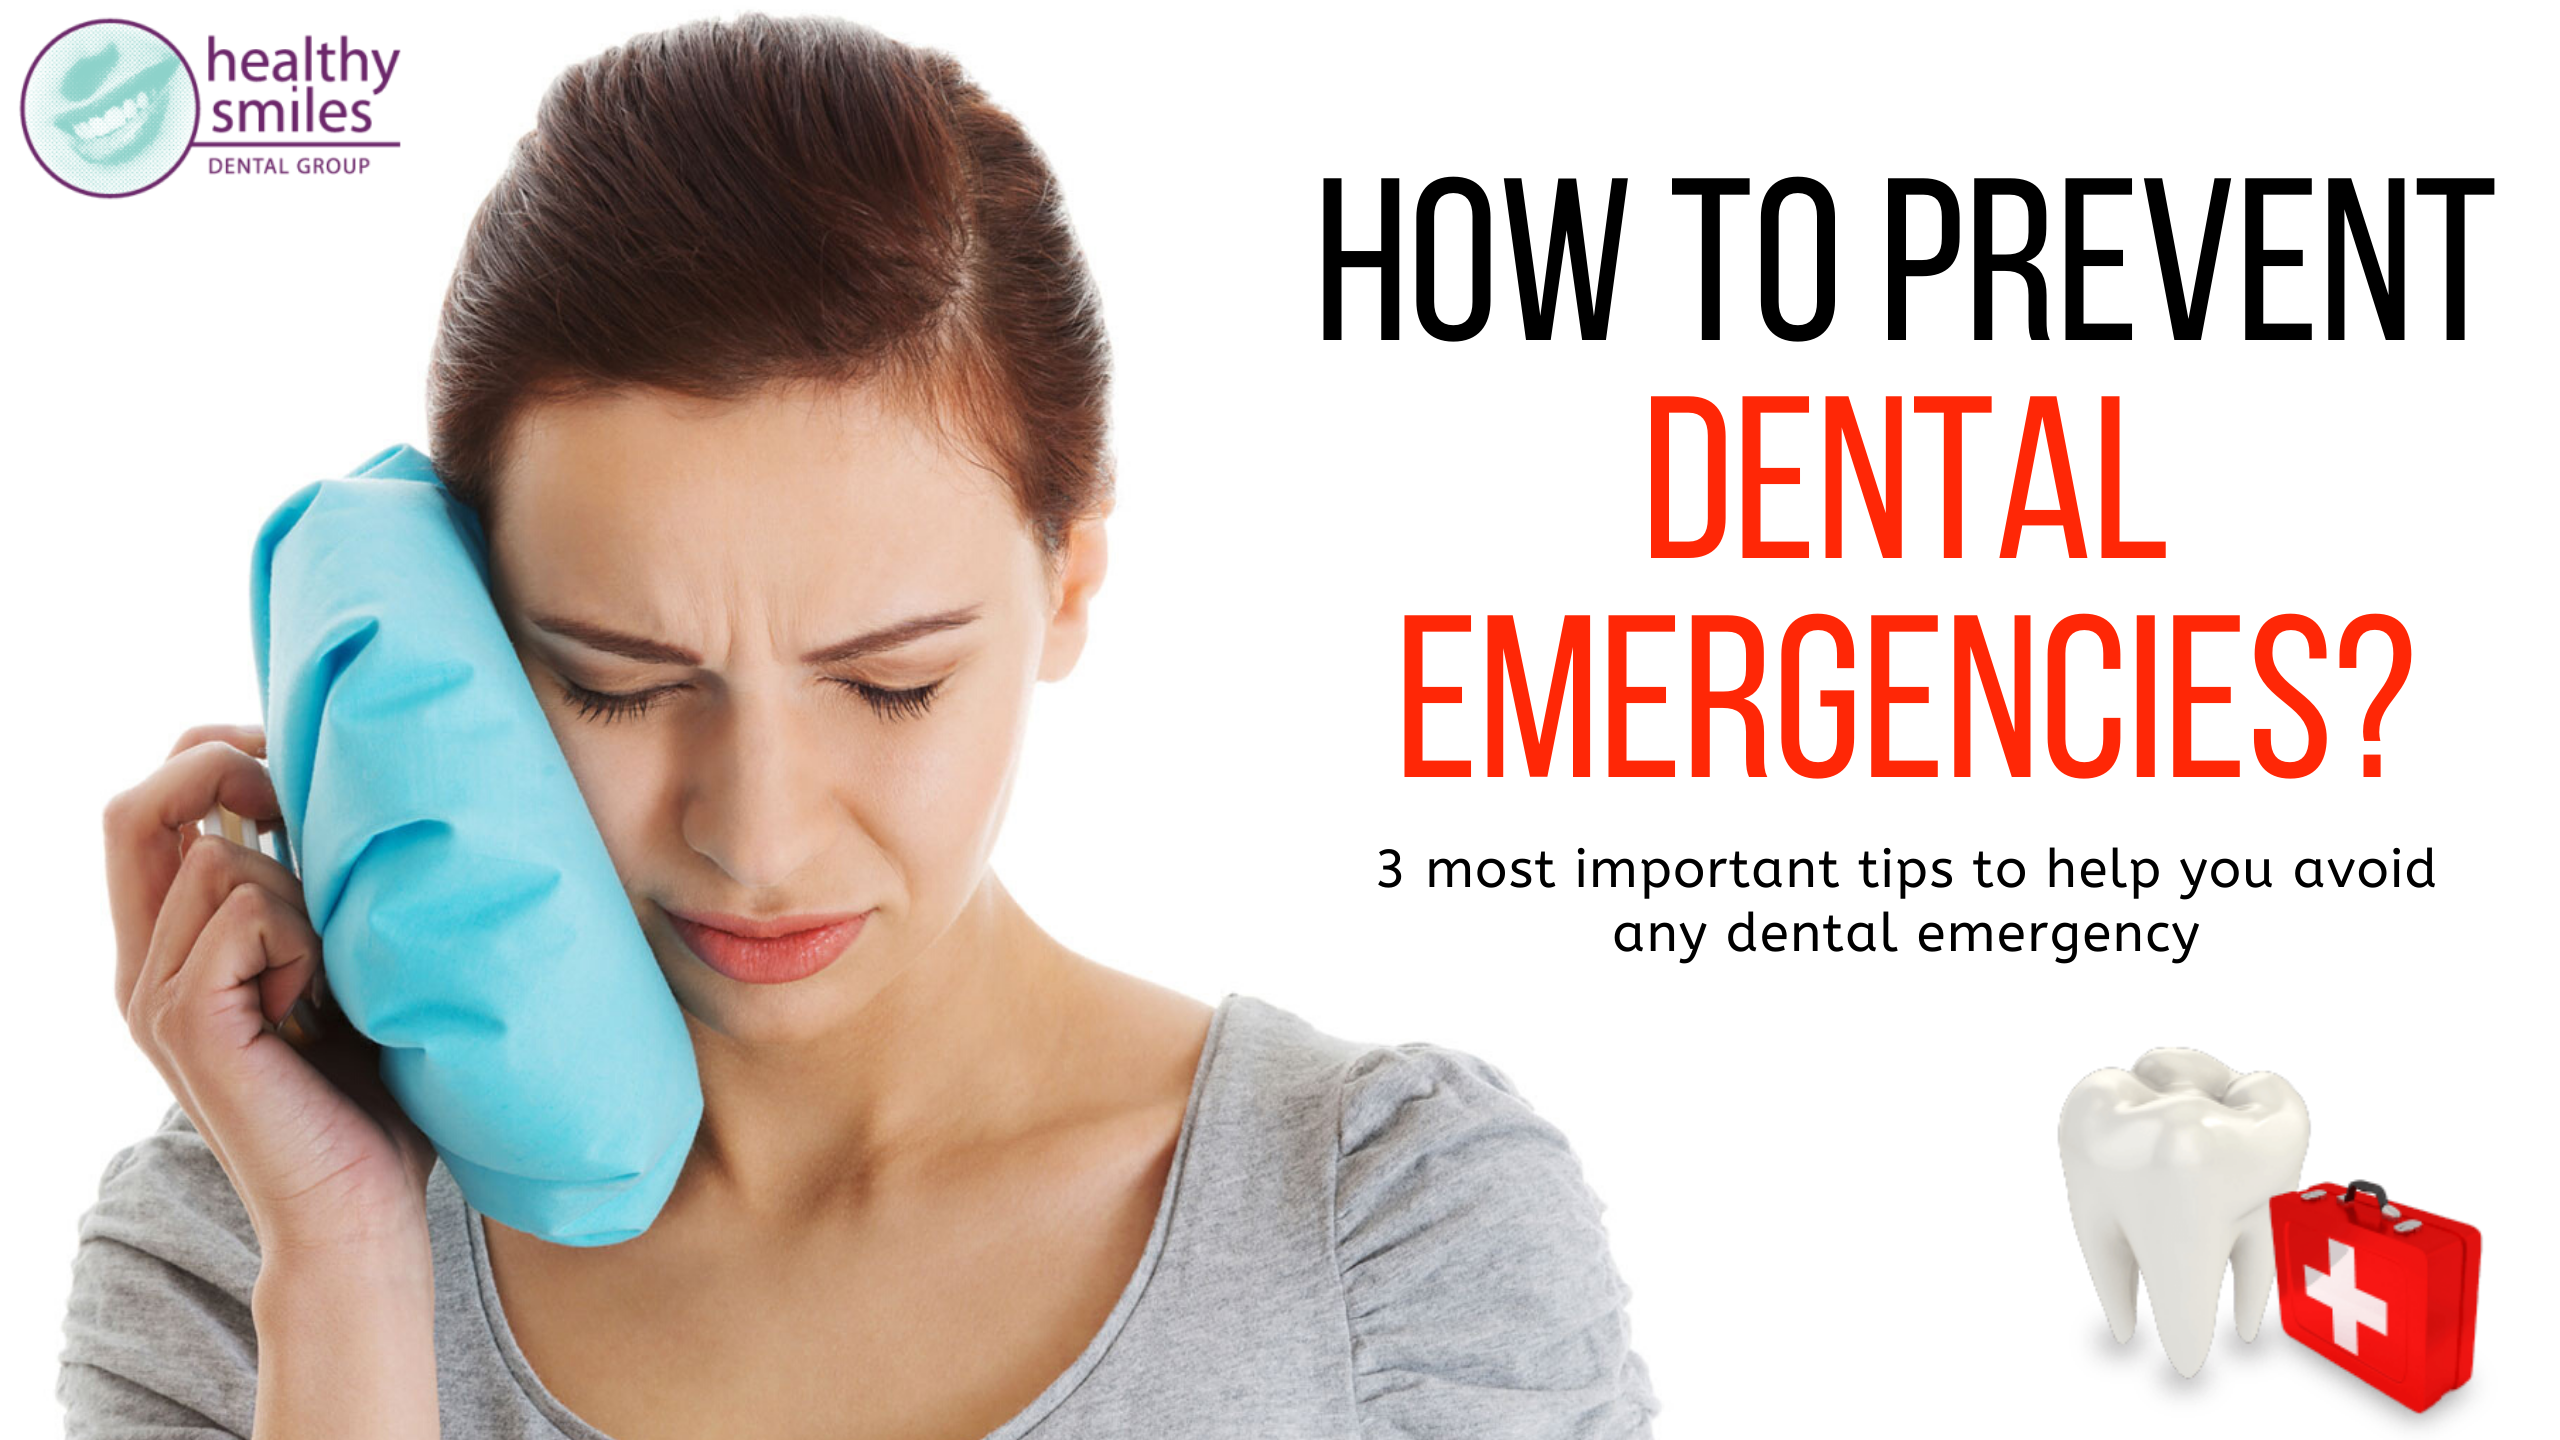 How to Prevent Dental Emergencies